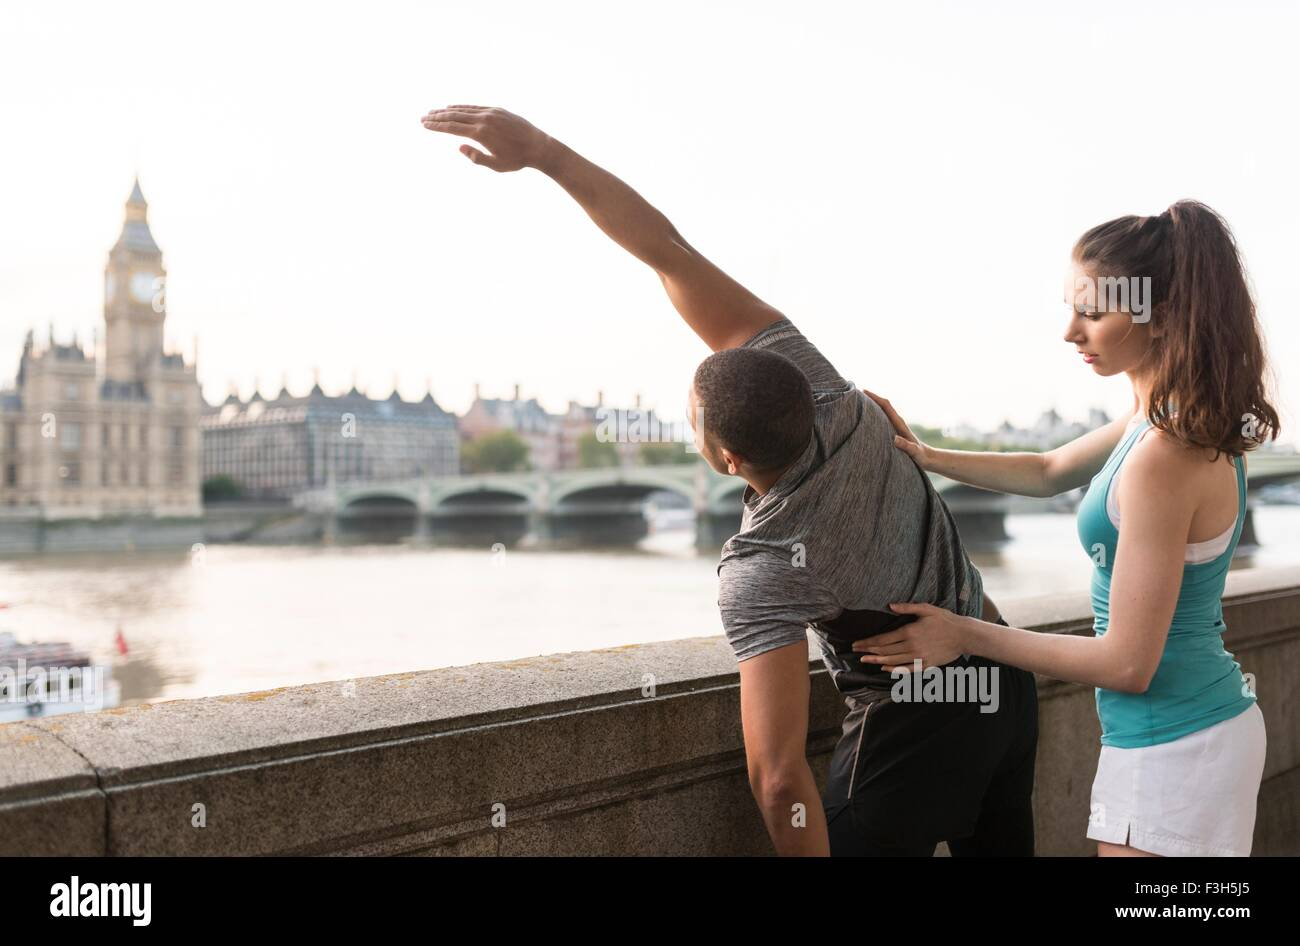 Male and female runners warming up on Southbank, London, UK - Stock Image